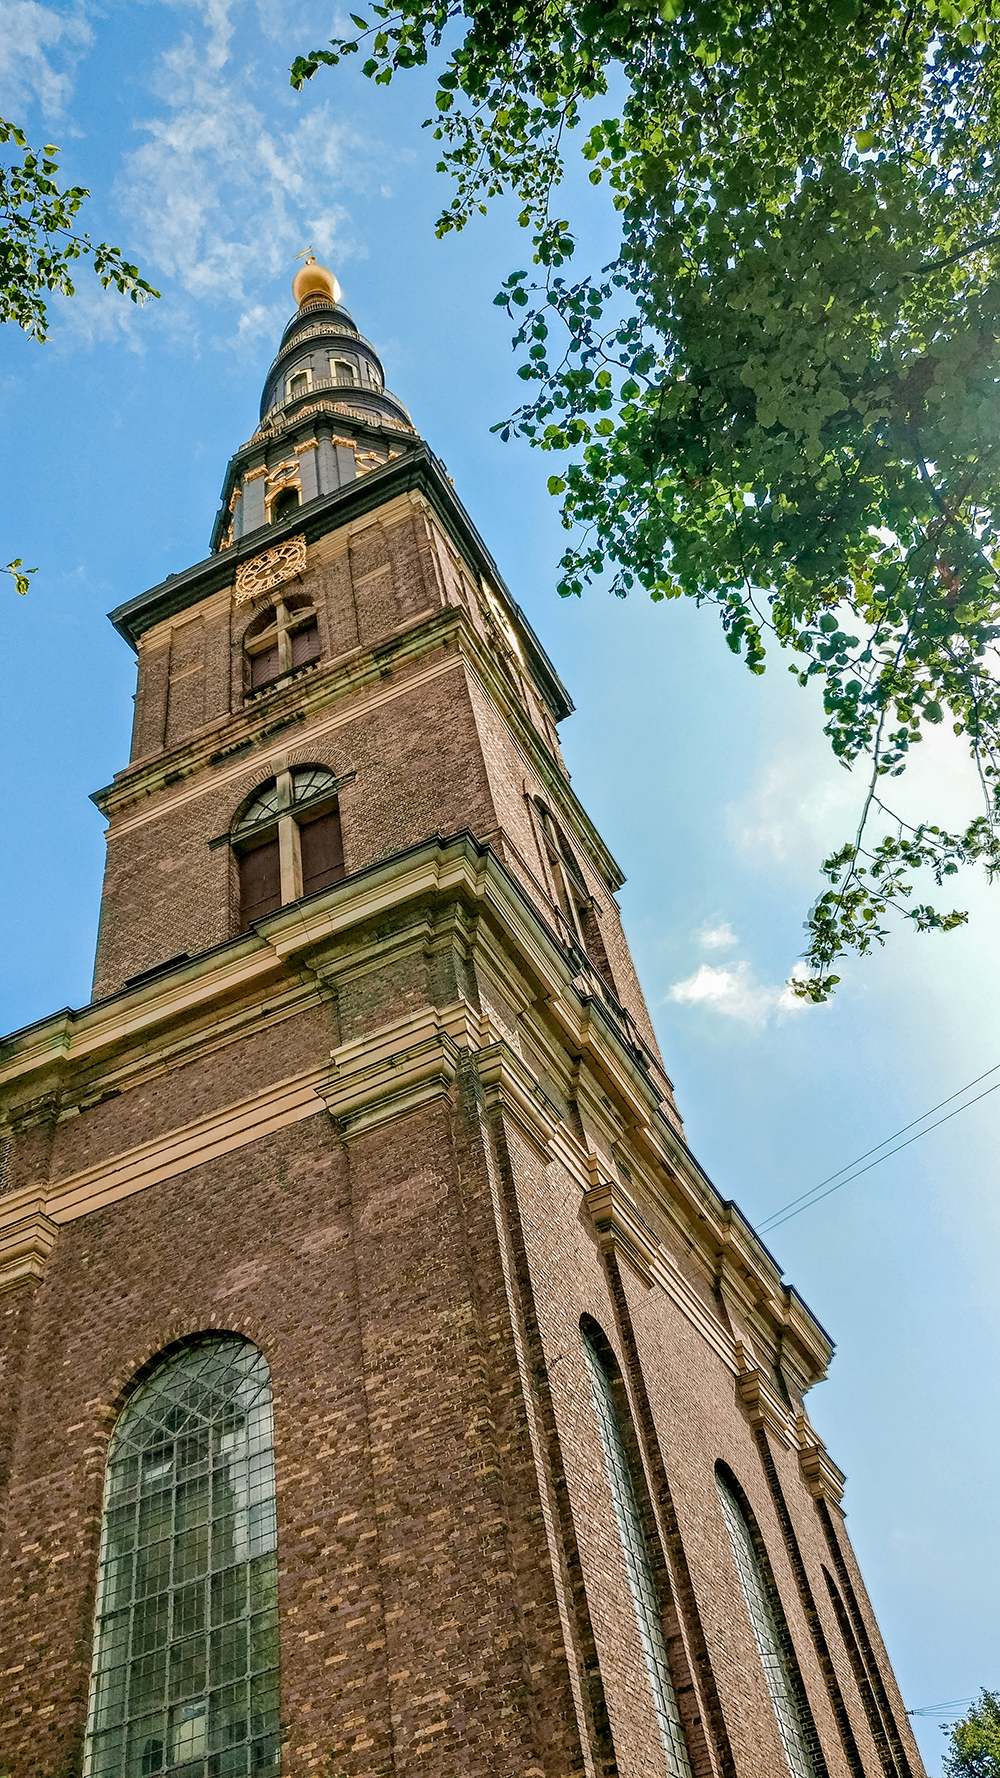 Christianshavn - Church of Our Saviour - Copenhagen 3-day travel itinerary | Aliz's Wonderland